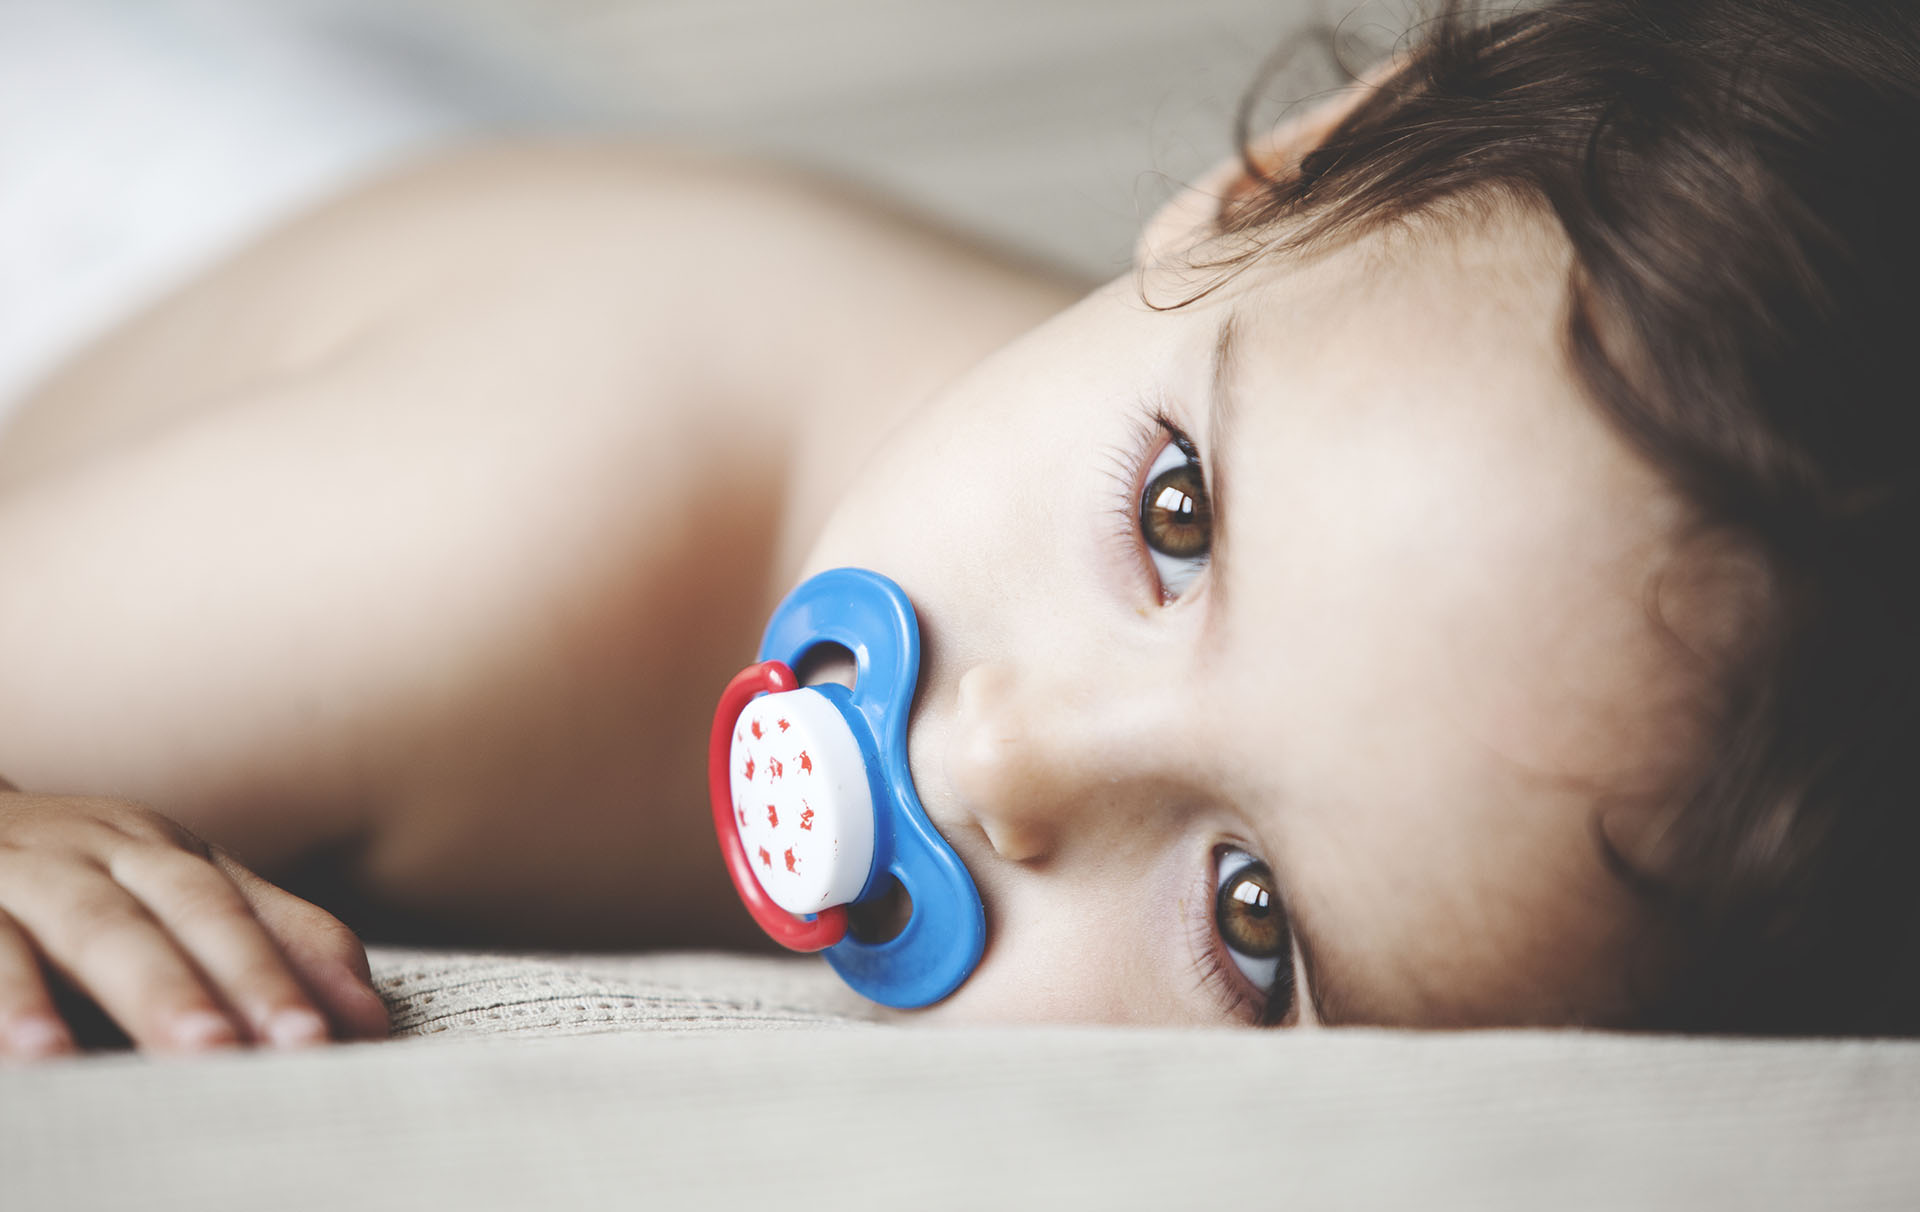 Dummies For Babies The Pros The Cons And When To Give